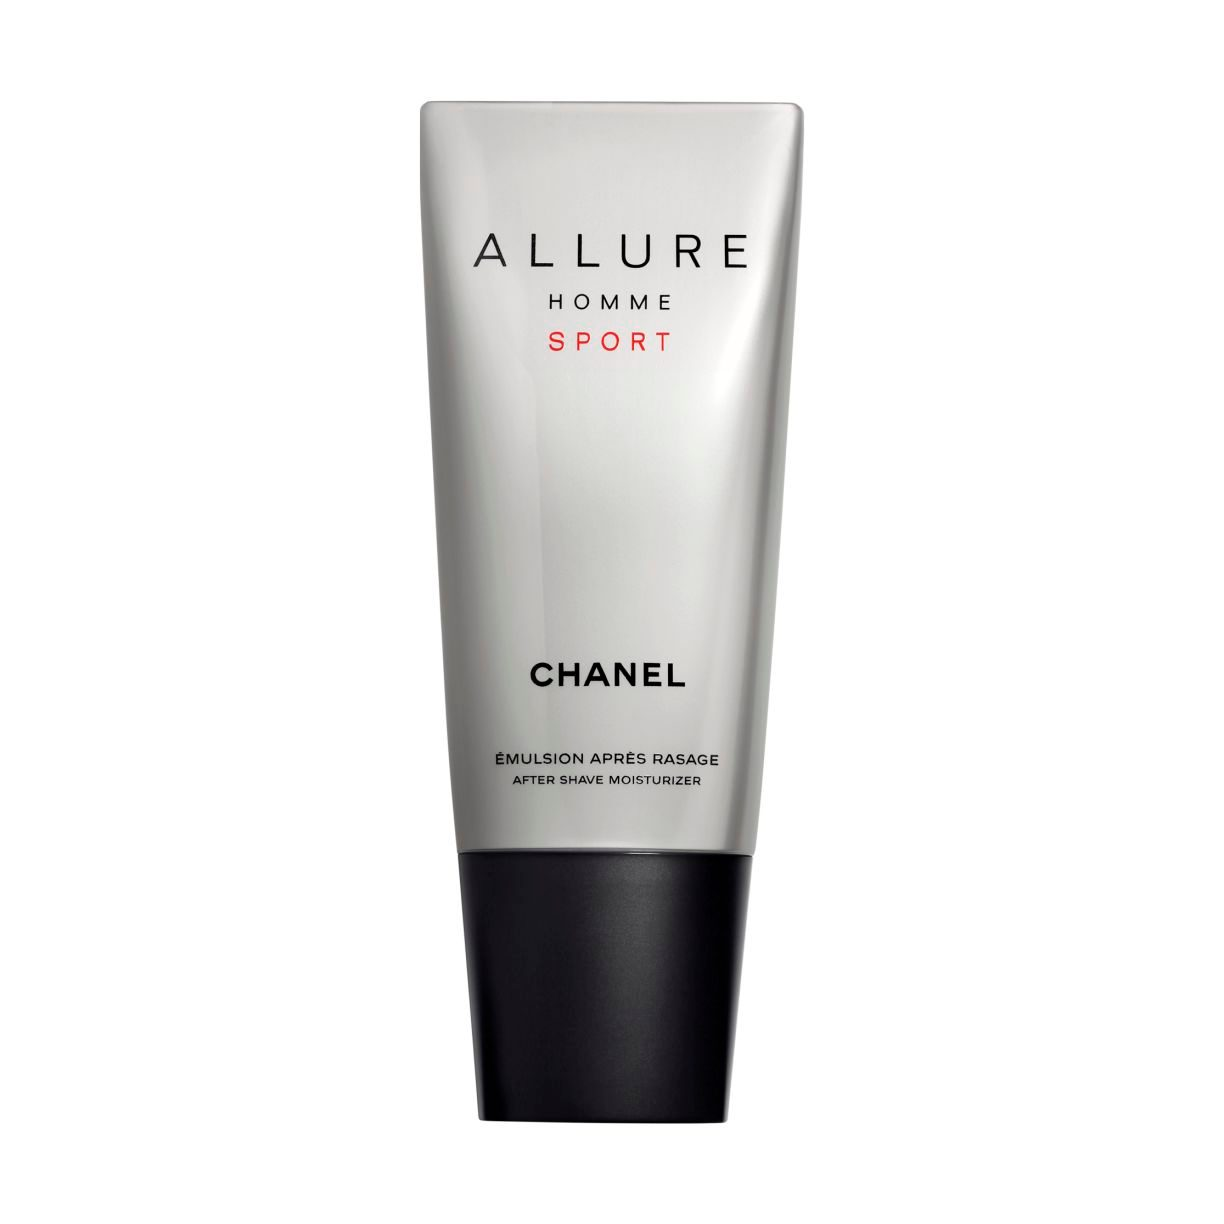 ALLURE HOMME SPORT AFTER SHAVE MOISTURIZER